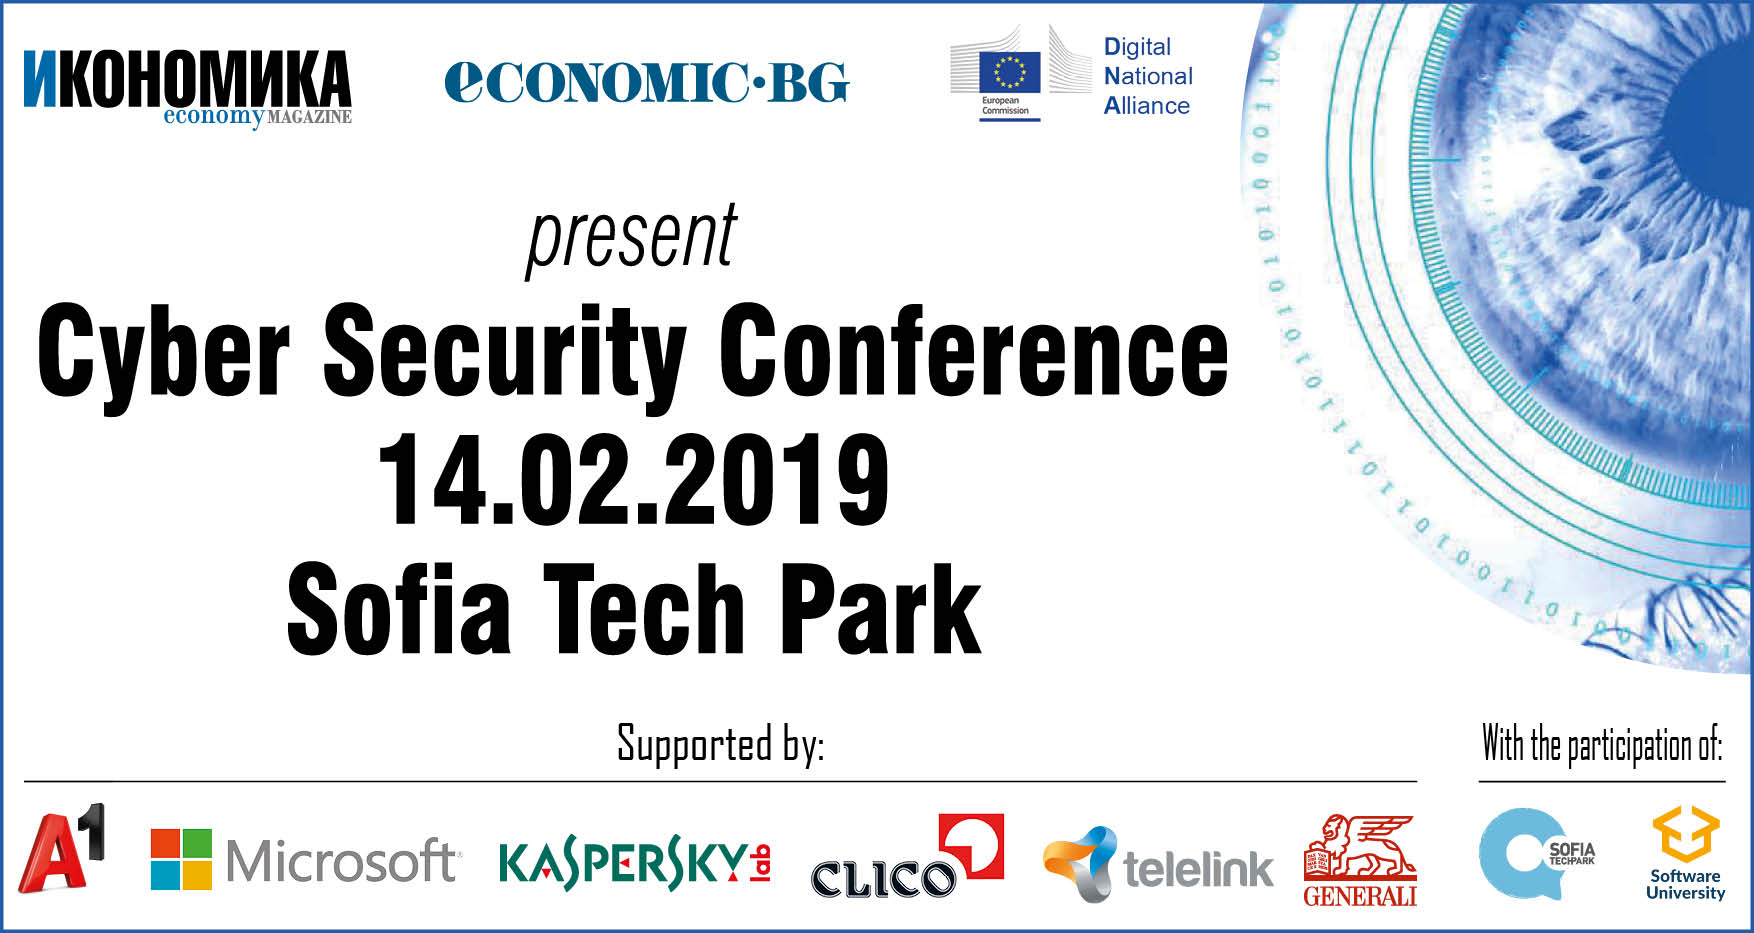 Get ready for a hands-on experience on cyber security in Sofia